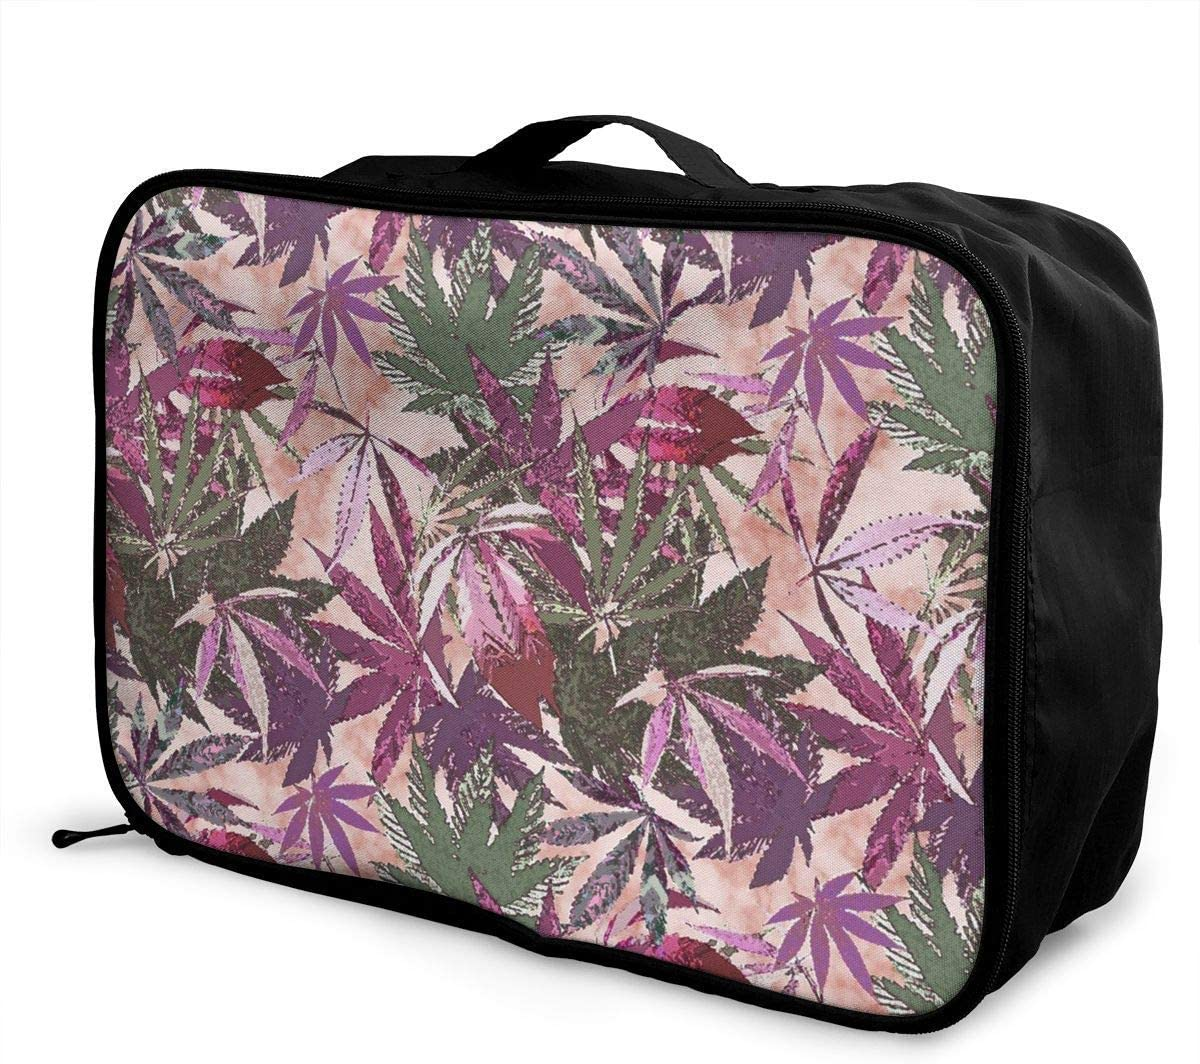 Bolsas de Viaje Equipaje Carretilla En Carretilla Portable Luggage Duffel Bag Cannabis Sativa Travel Bags Carry-on In Trolley Handle Weekender Bag Fashion Carry-on Tote Lightweight Large